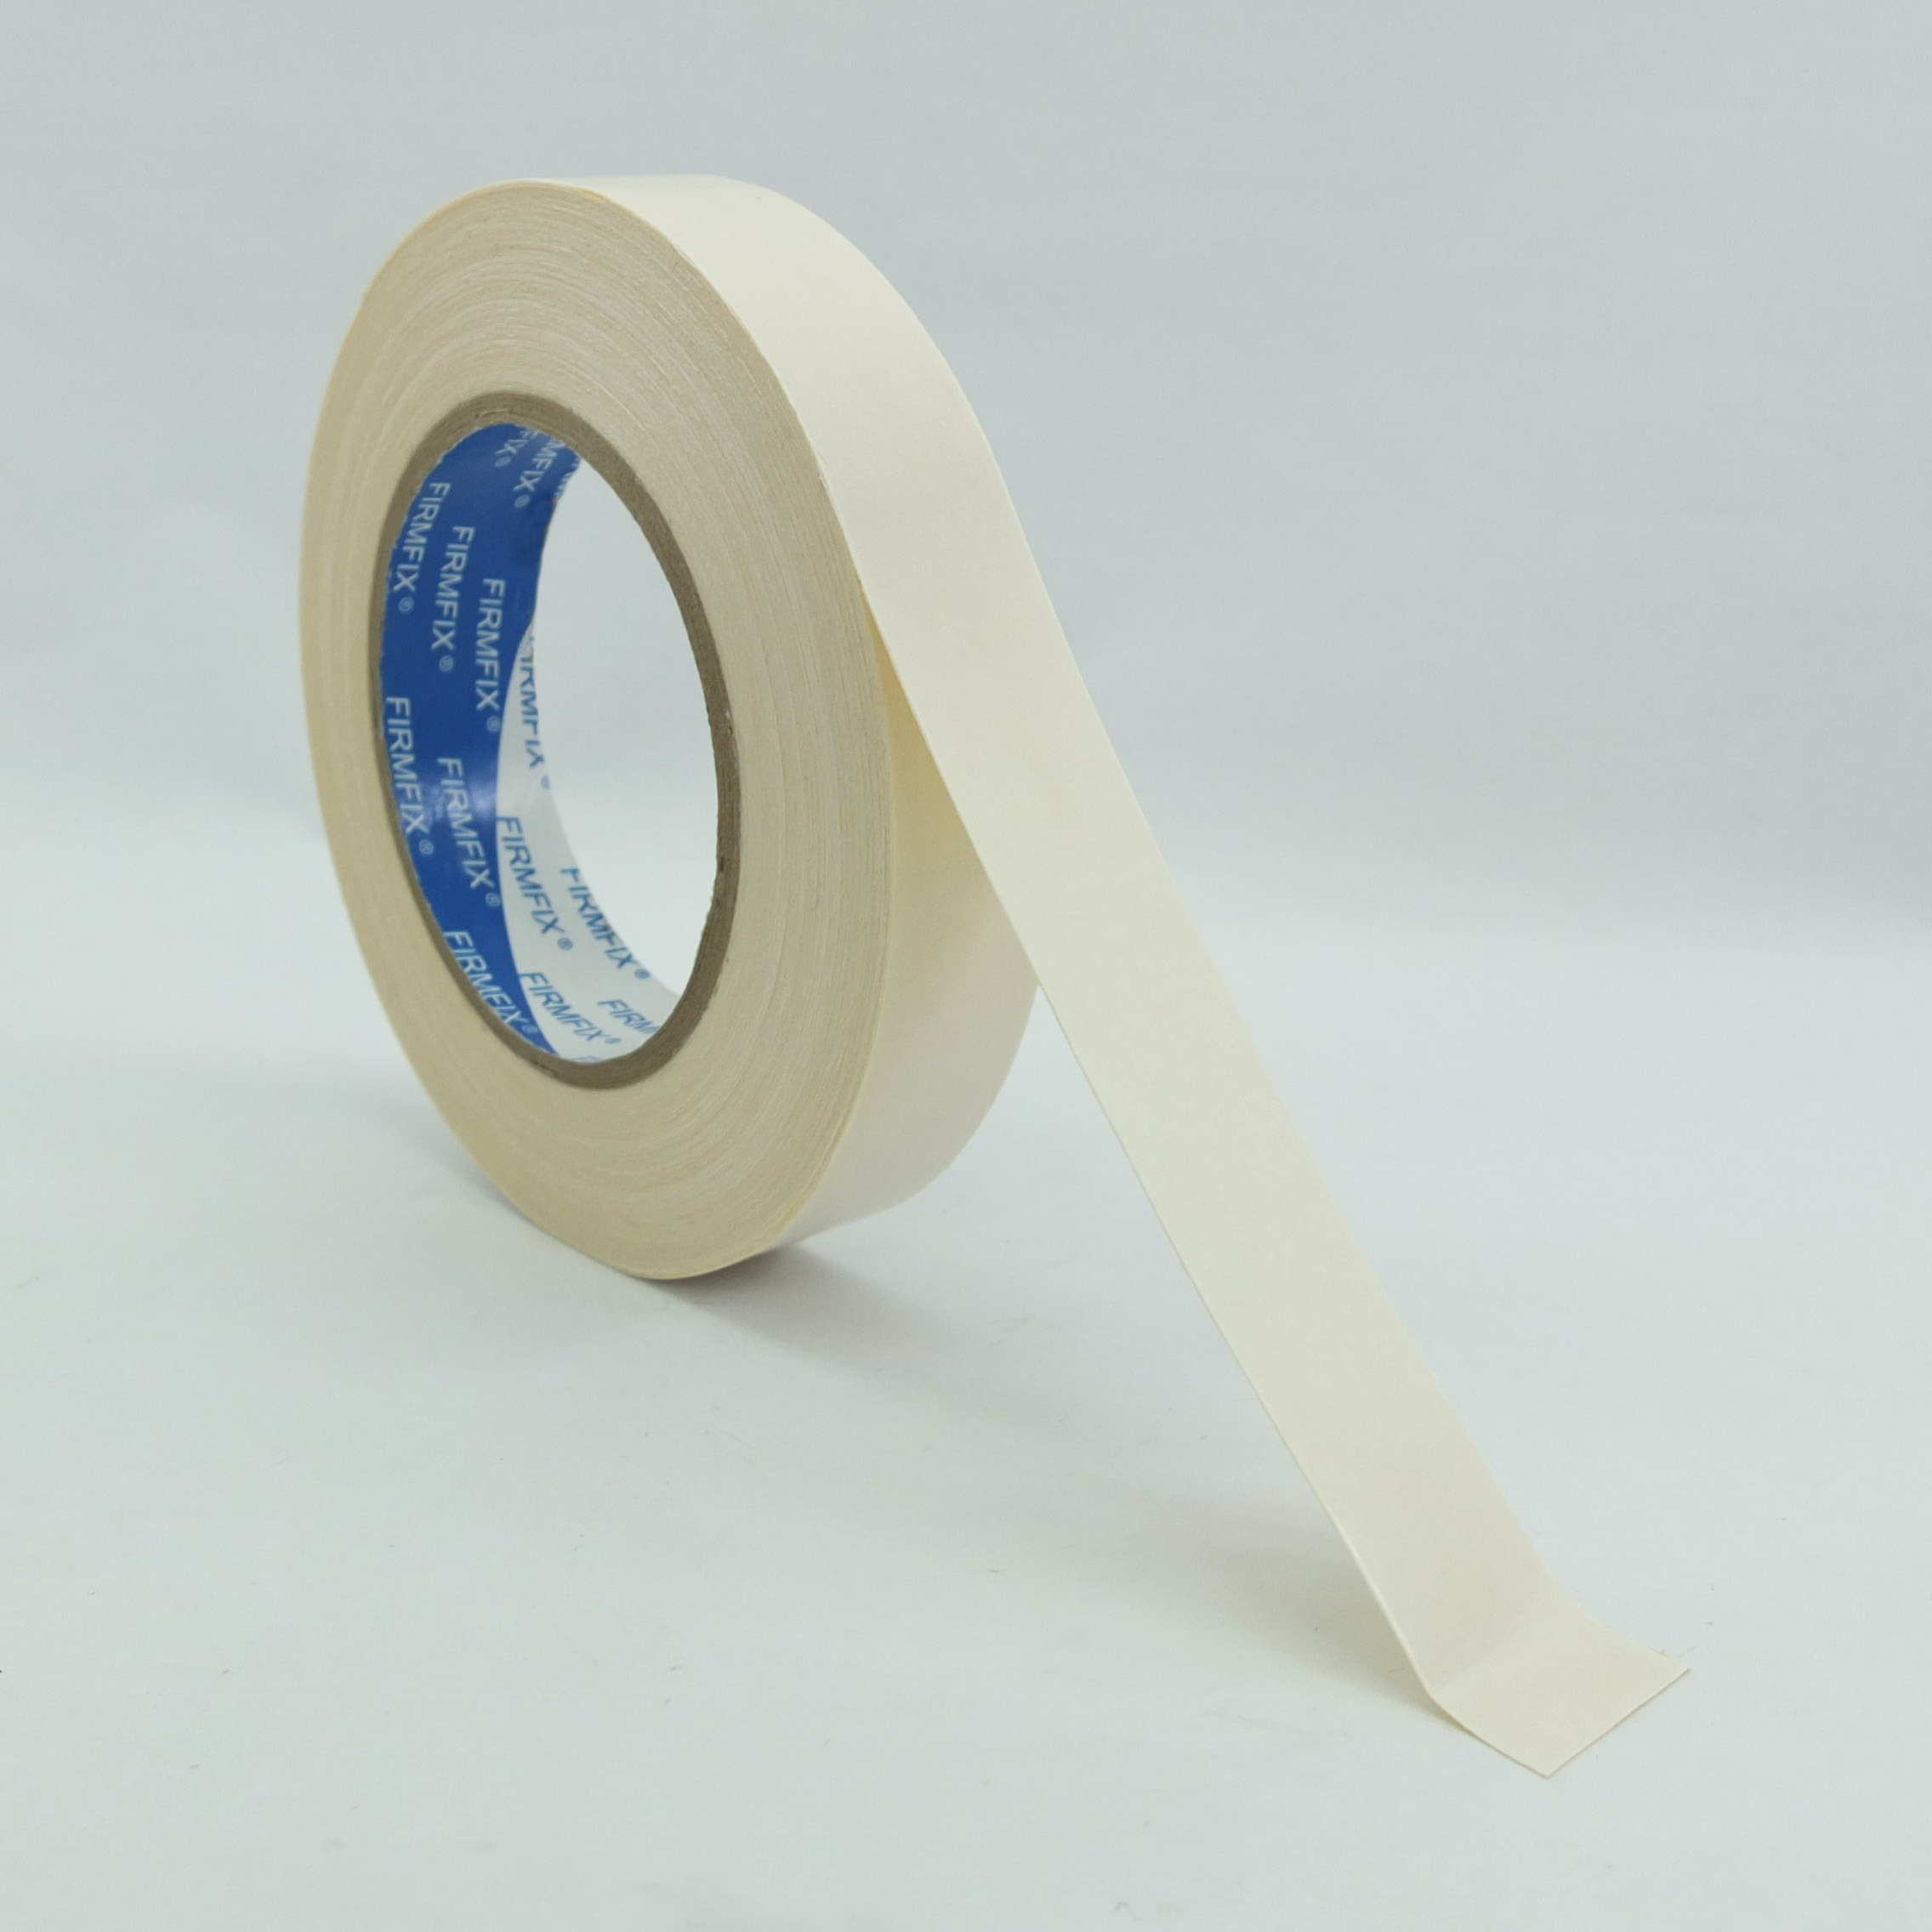 FIRMFIX Reposition Tape